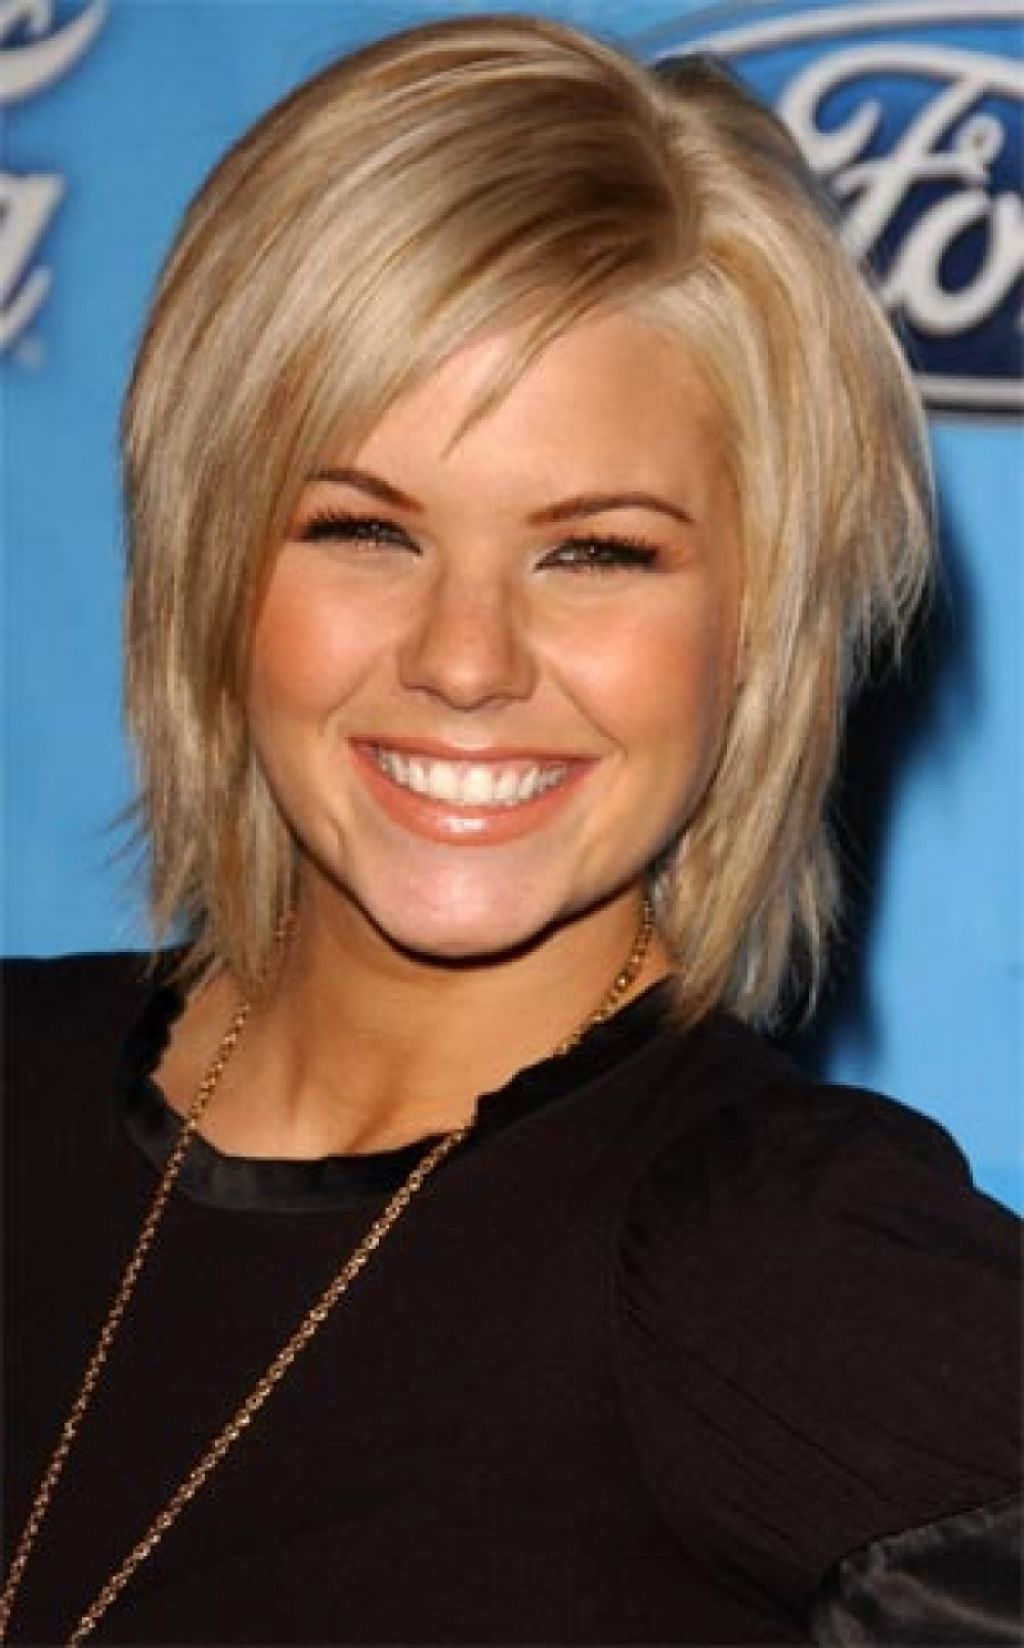 Current Wispy Medium Haircuts Intended For Medium Length Haircut Women – Hairstyle For Women & Man (View 10 of 20)